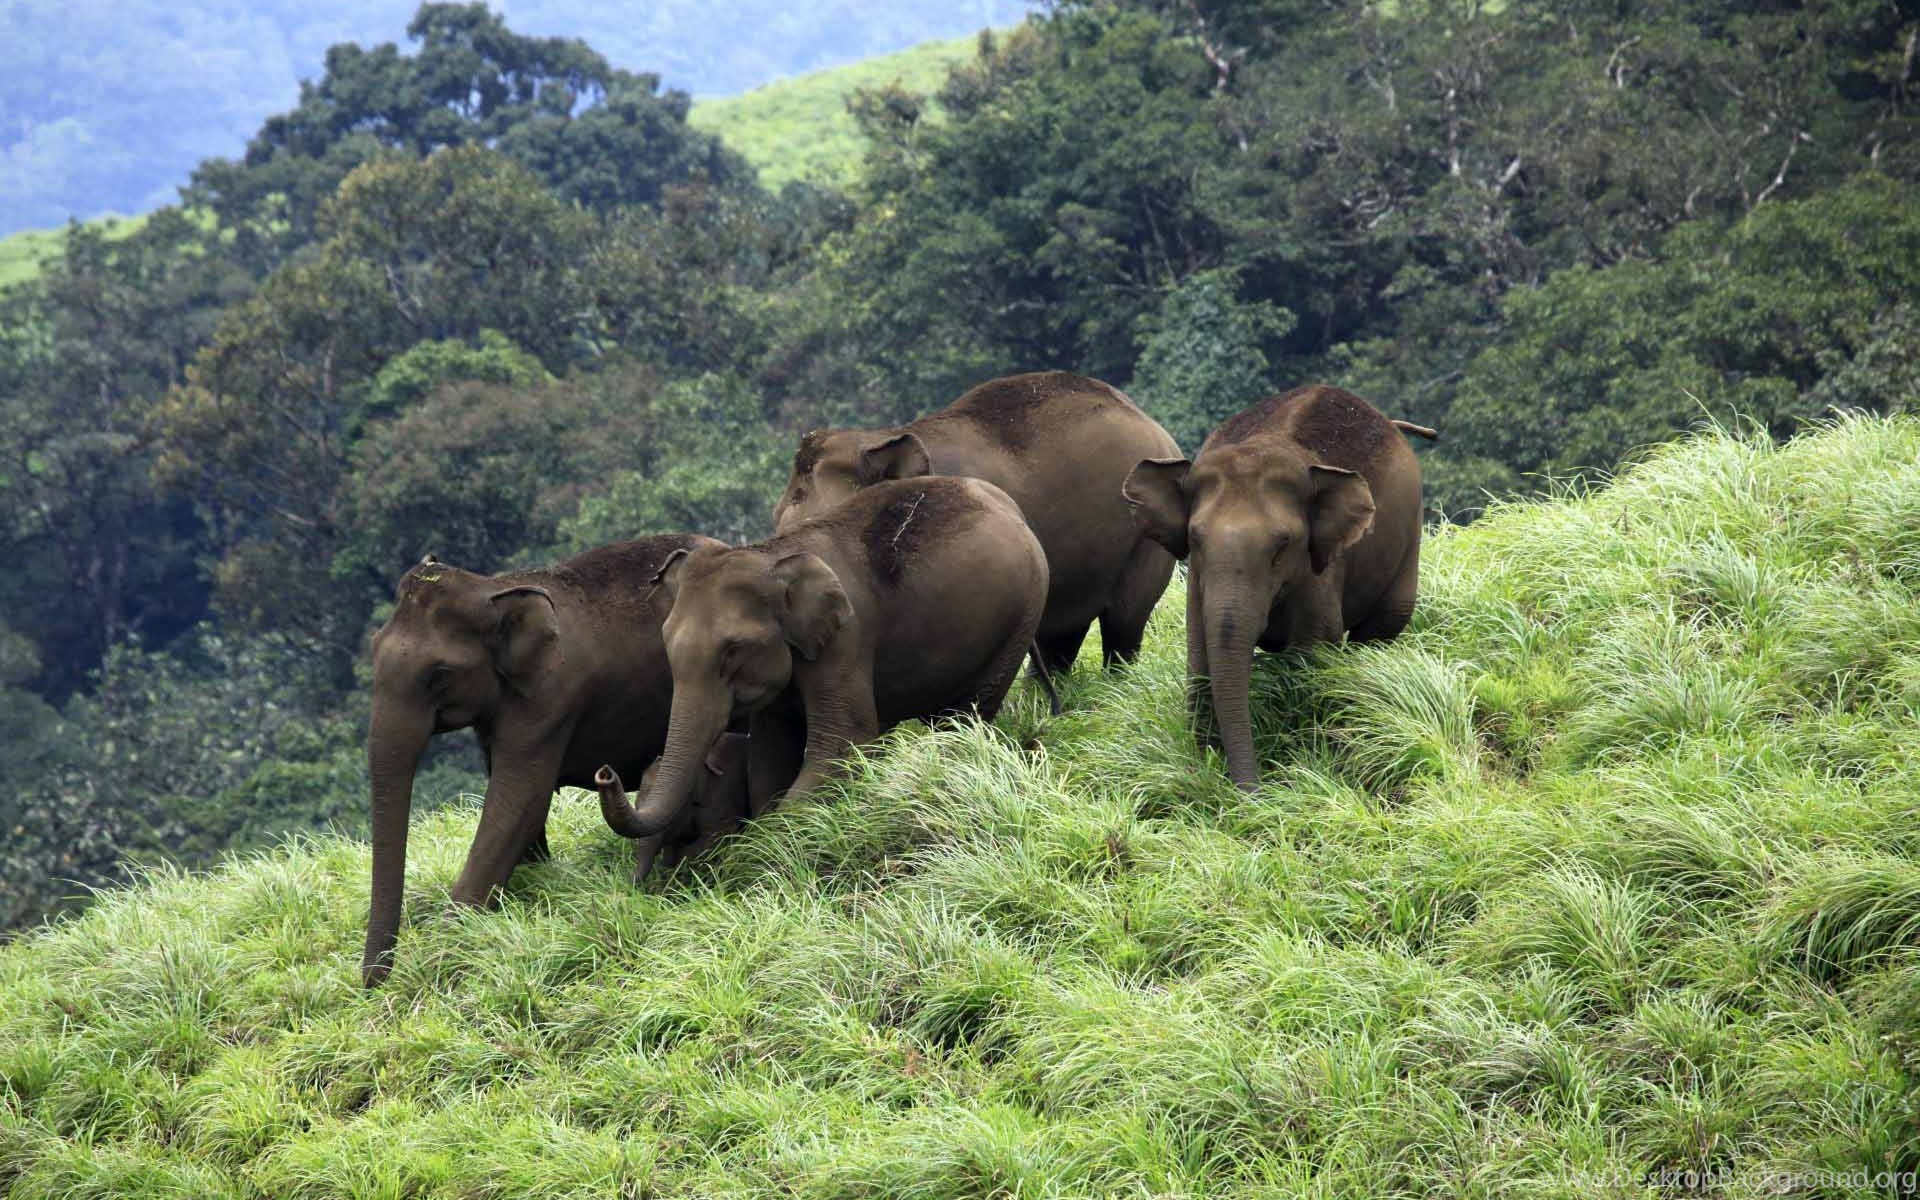 Kerala Elephant Wallpaper Hd Elephants From K...